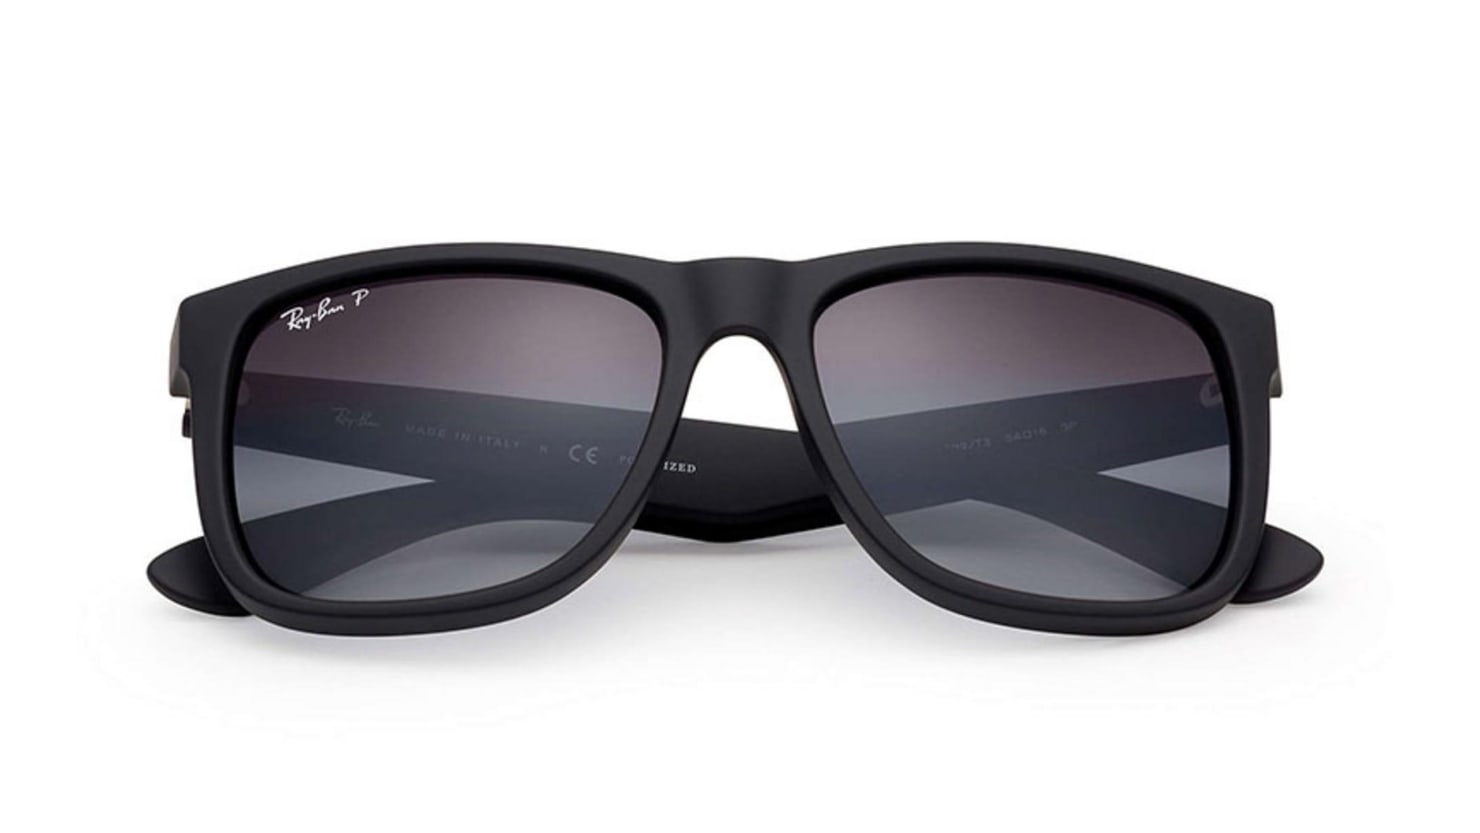 Wear These Ray-Ban Sunglasses All Summer Long